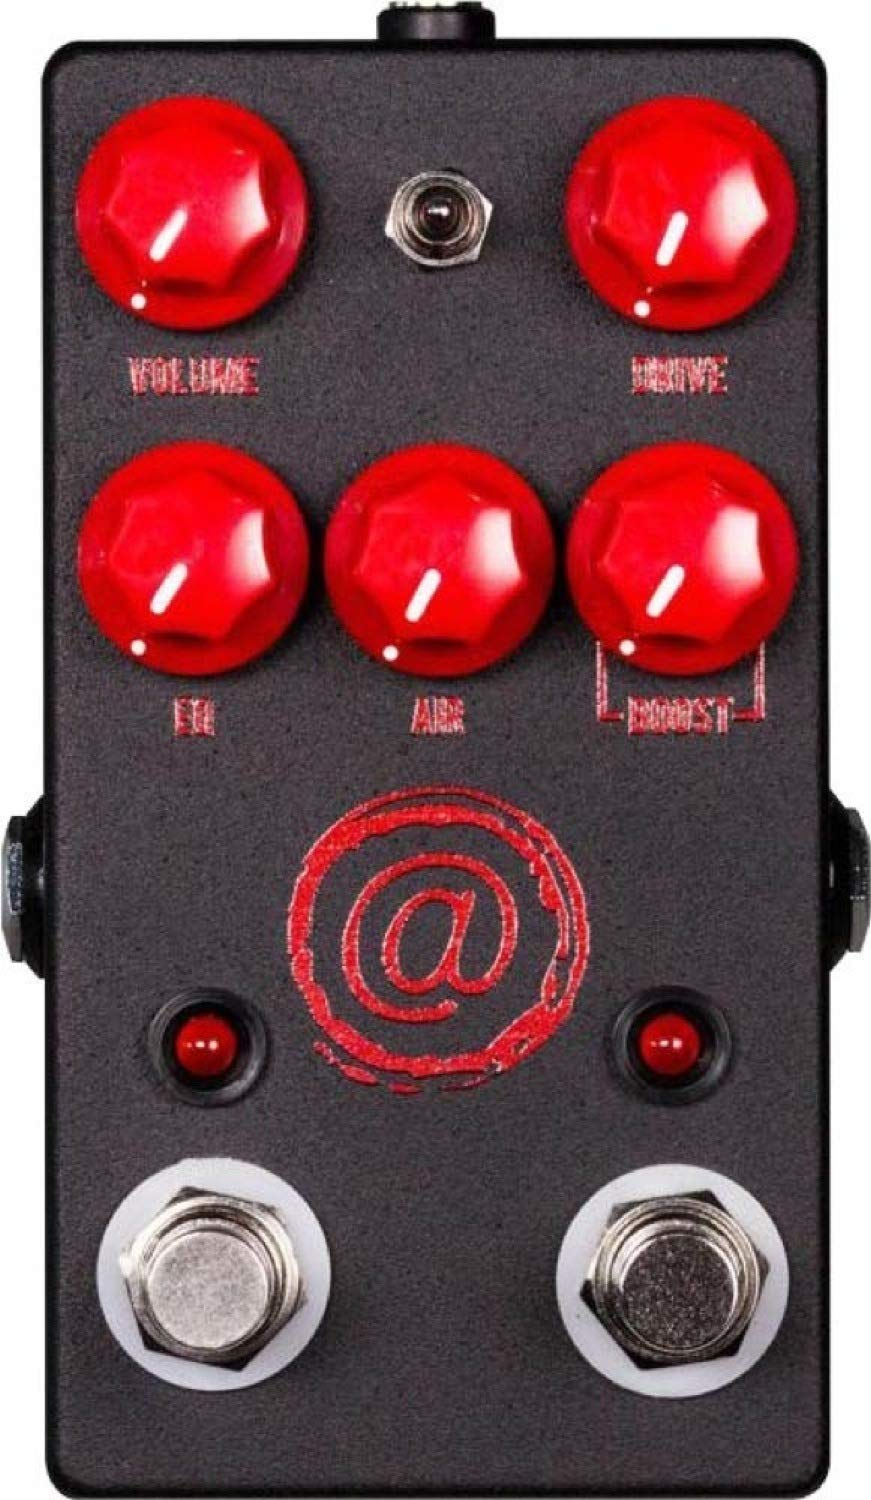 JHS Pedals The AT+ Inverted Color Andy Timmons オーバードライブ ディストーション エフェクター   B07J5M7536